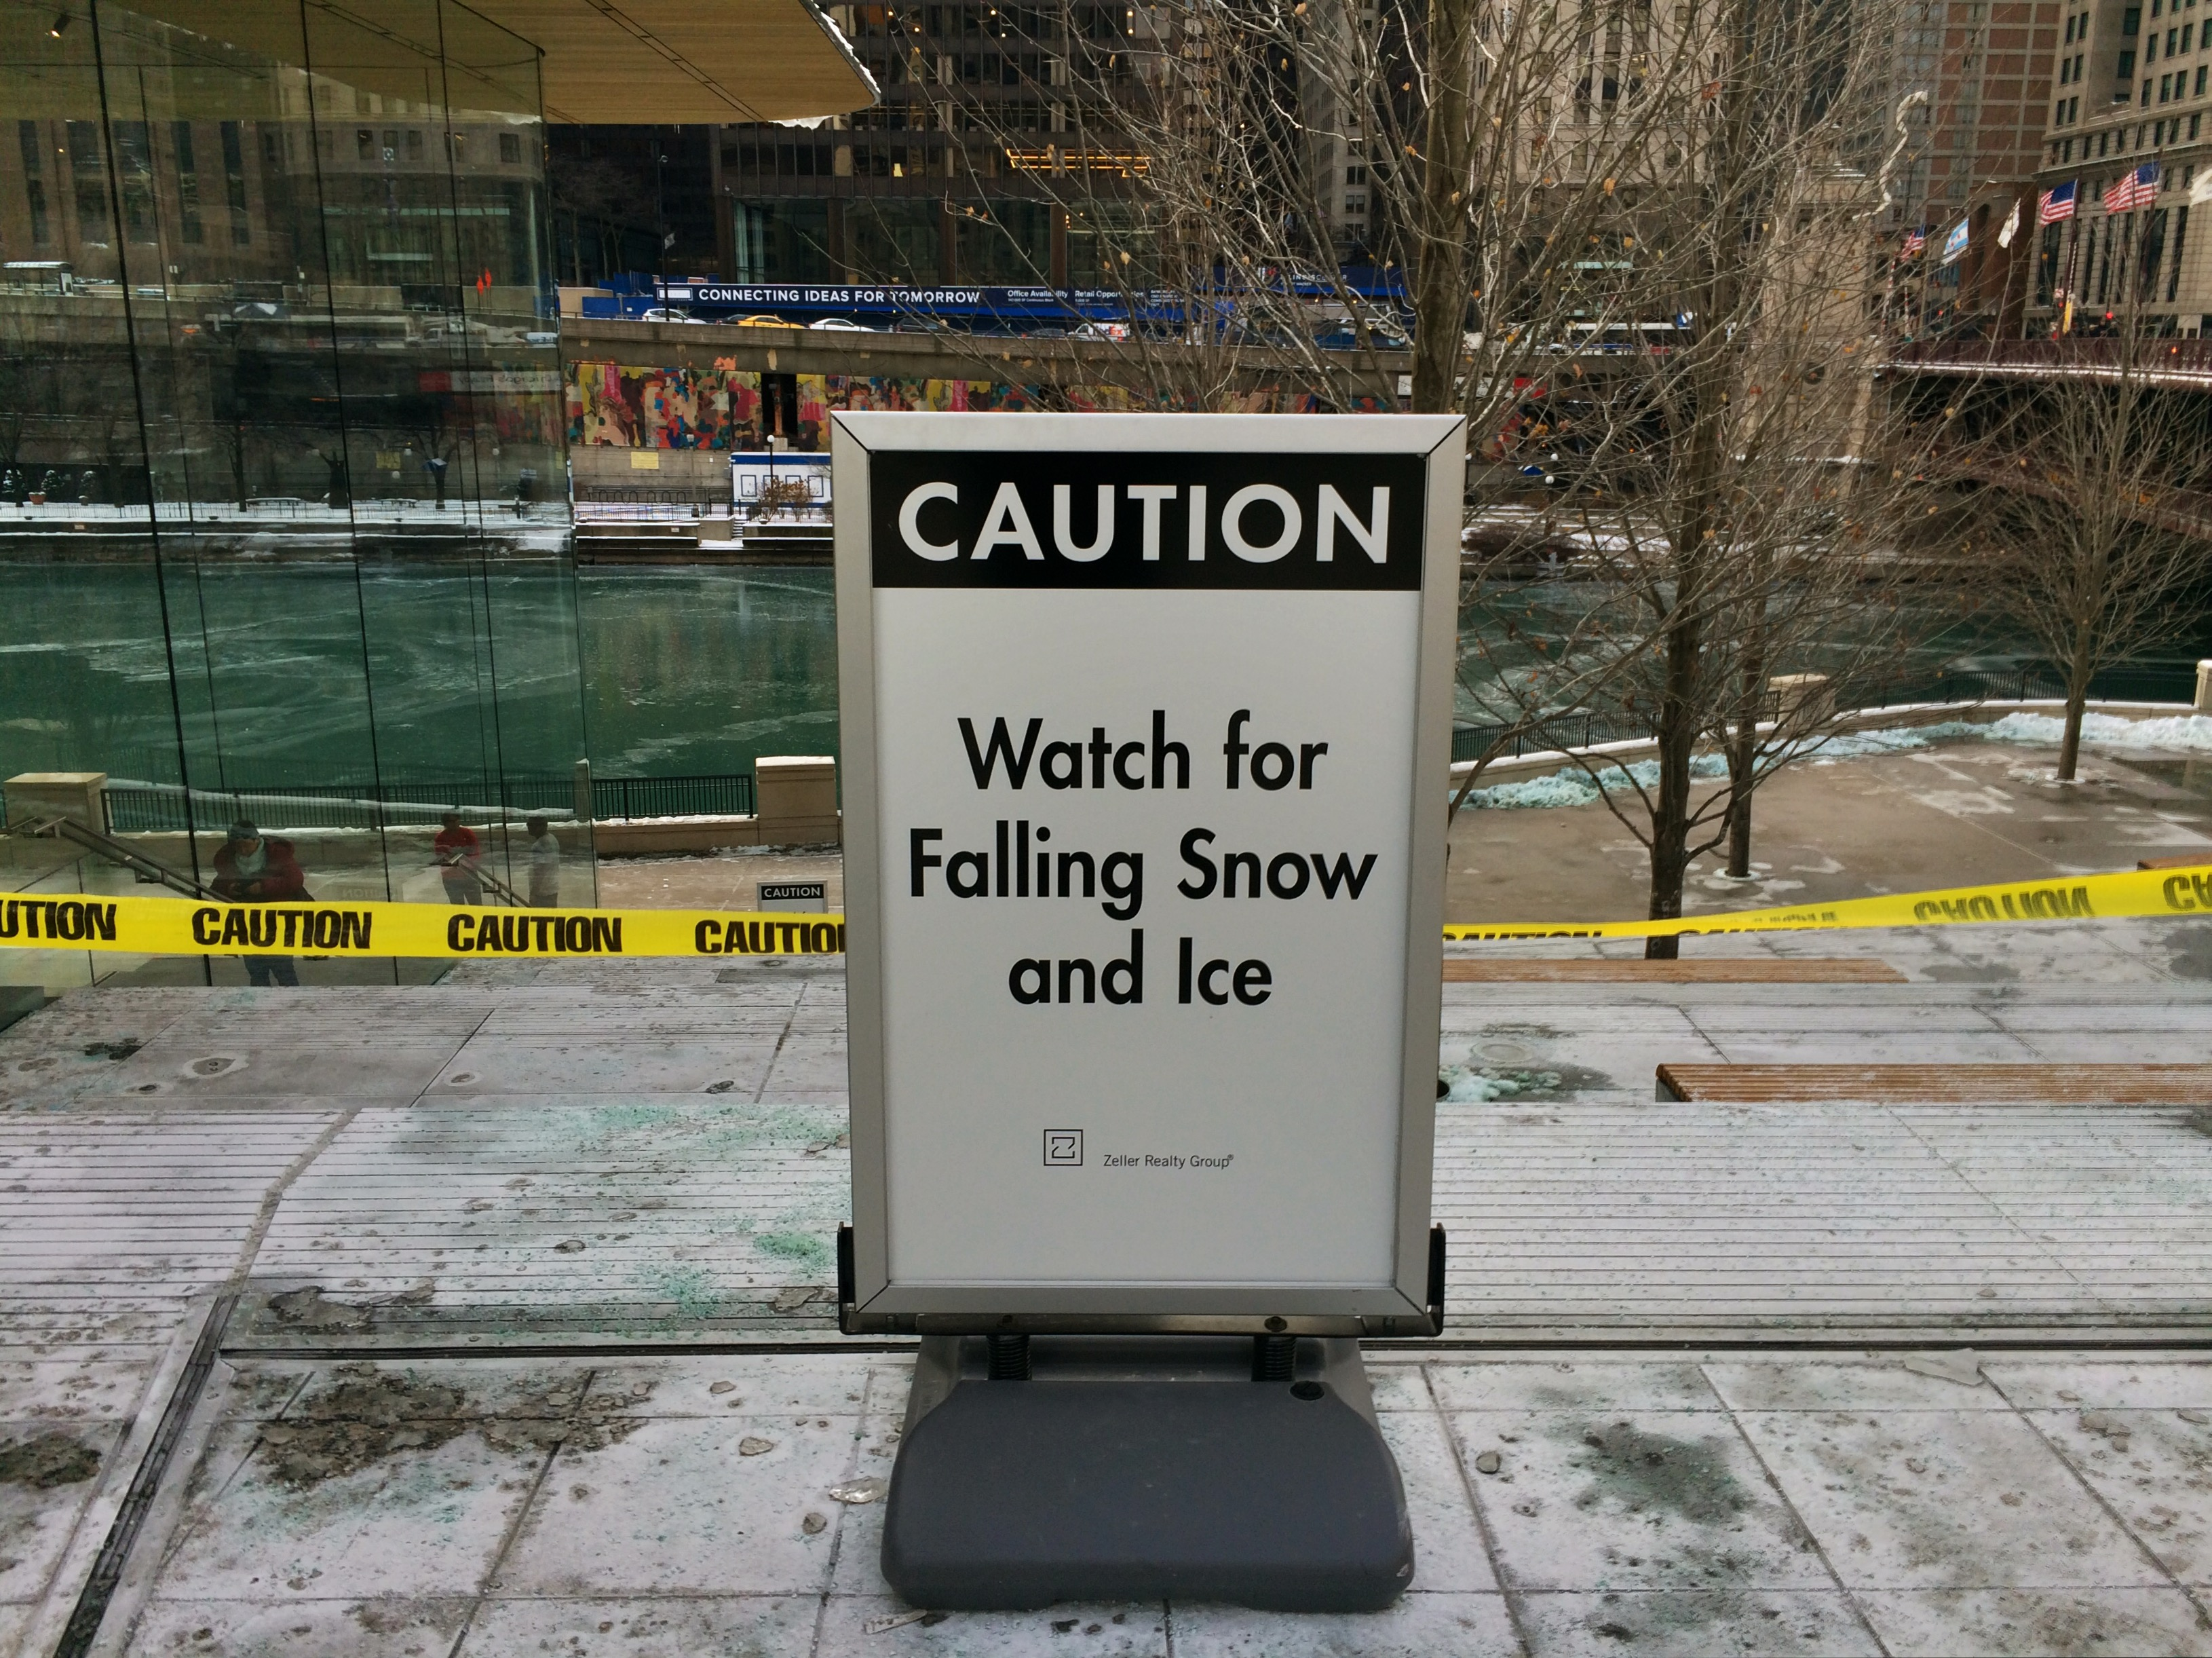 Caution: Watching for Falling Snow and Ice